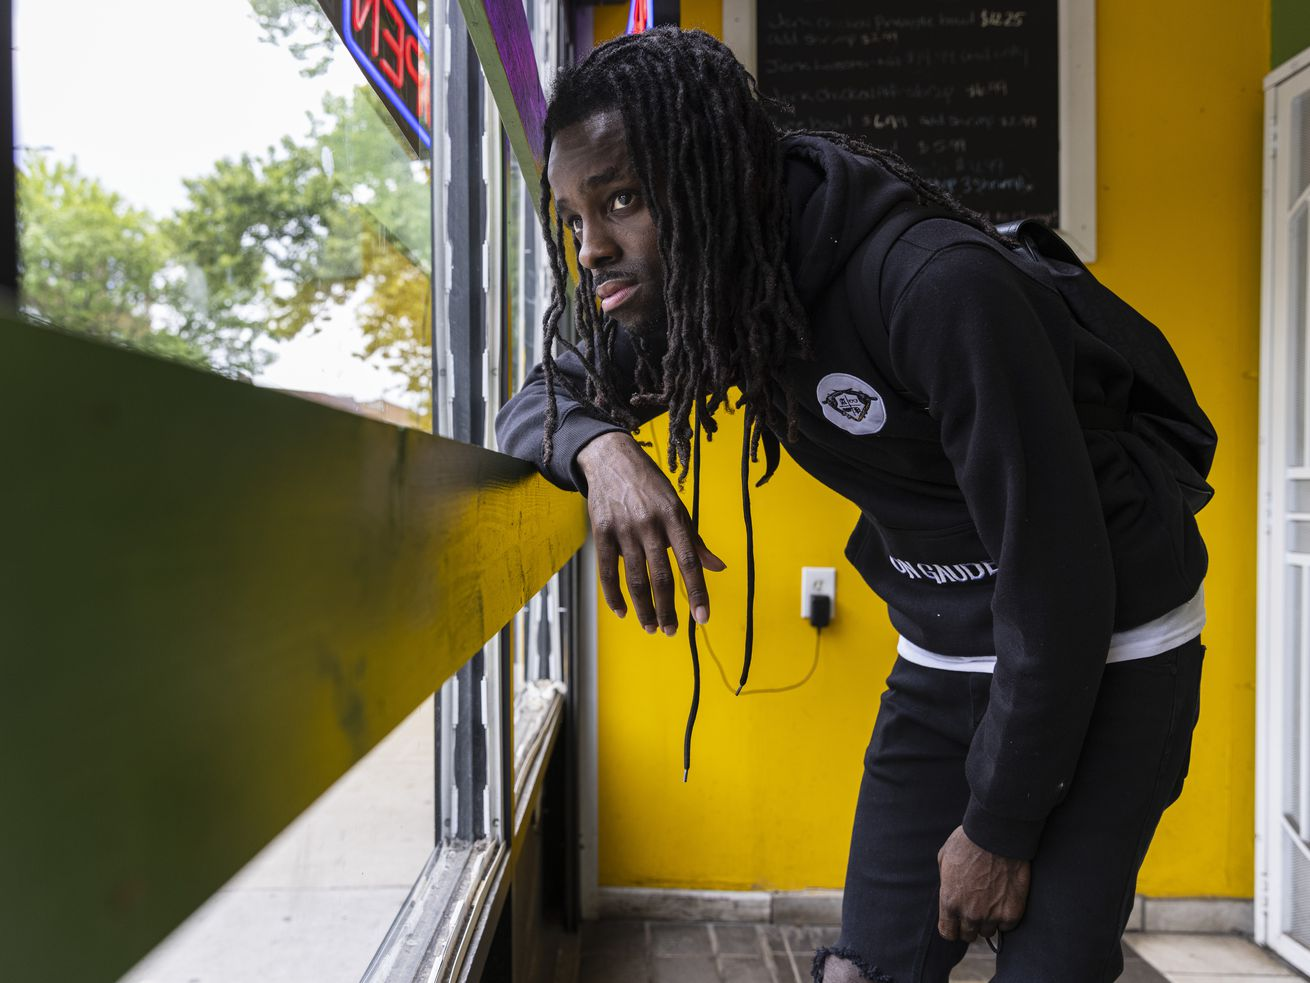 Social media influencer and rapper Korporate, a.k.a. Donovan Price, stops by Jerk 48, a Woodlawn restaurant often seen in his videos.